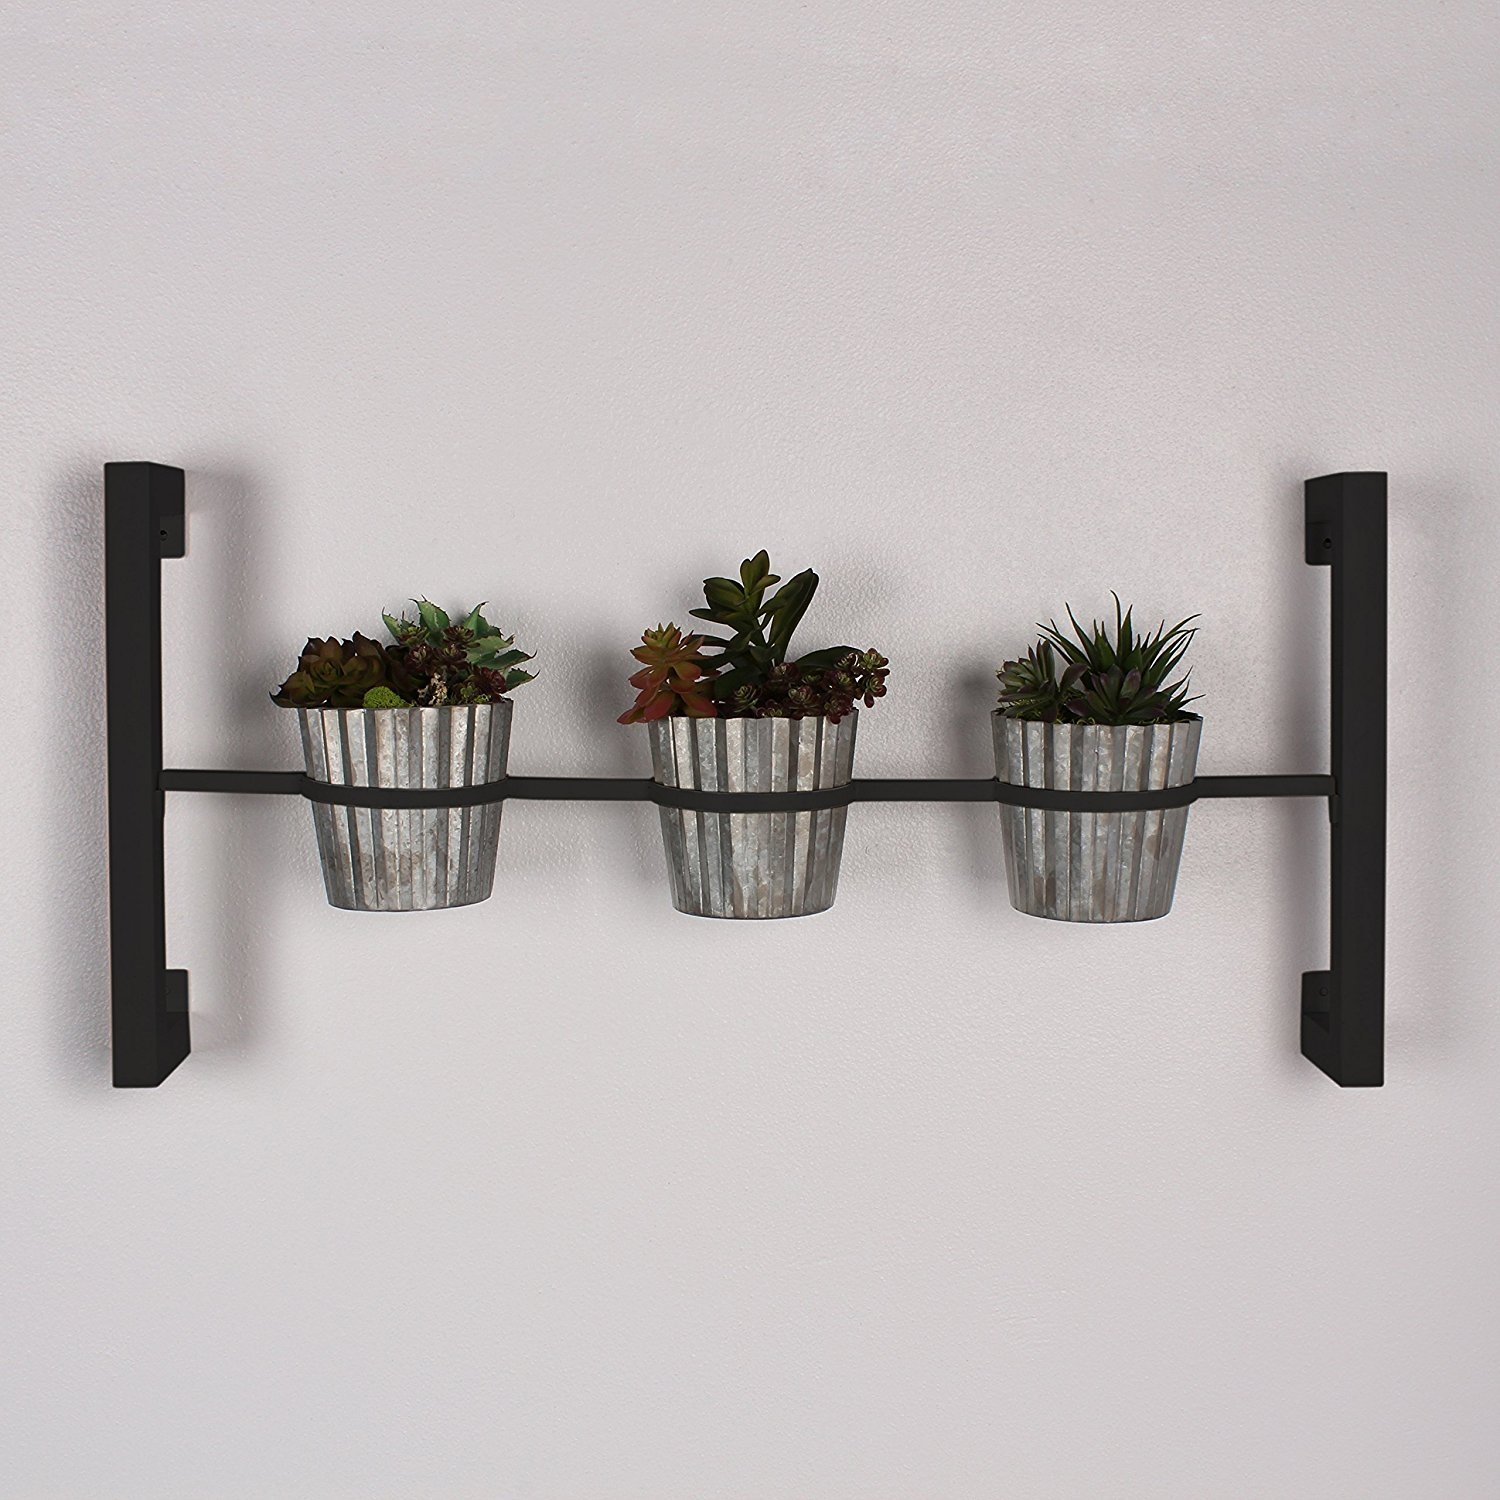 Groves Indoor Herb Garden Hanging 3 Pot Wall Planter Black Walmart Com Walmart Com